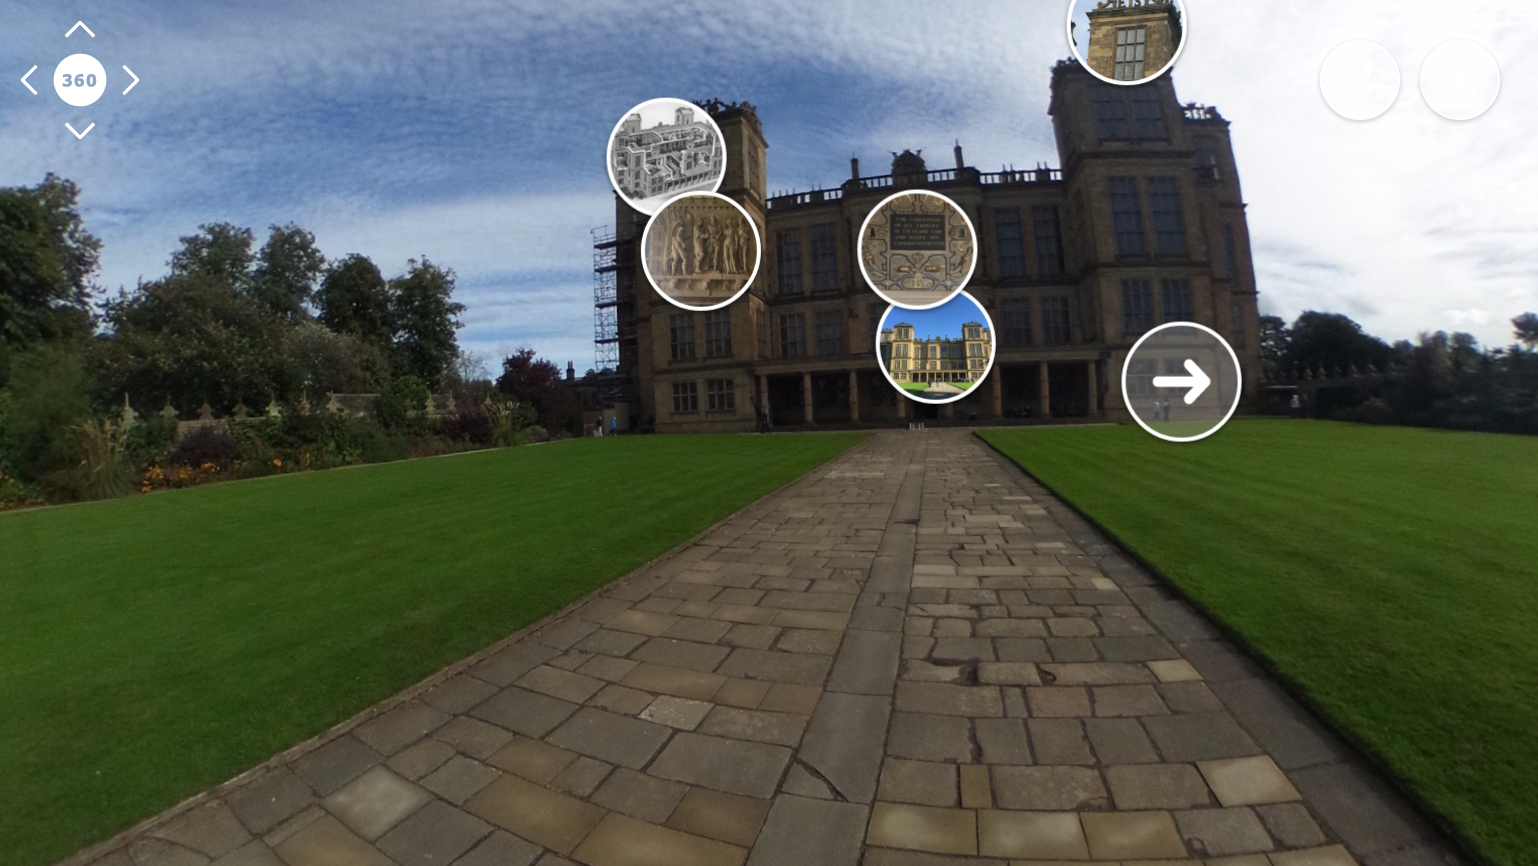 Video still from the Hardwick Hall Virtual Tour